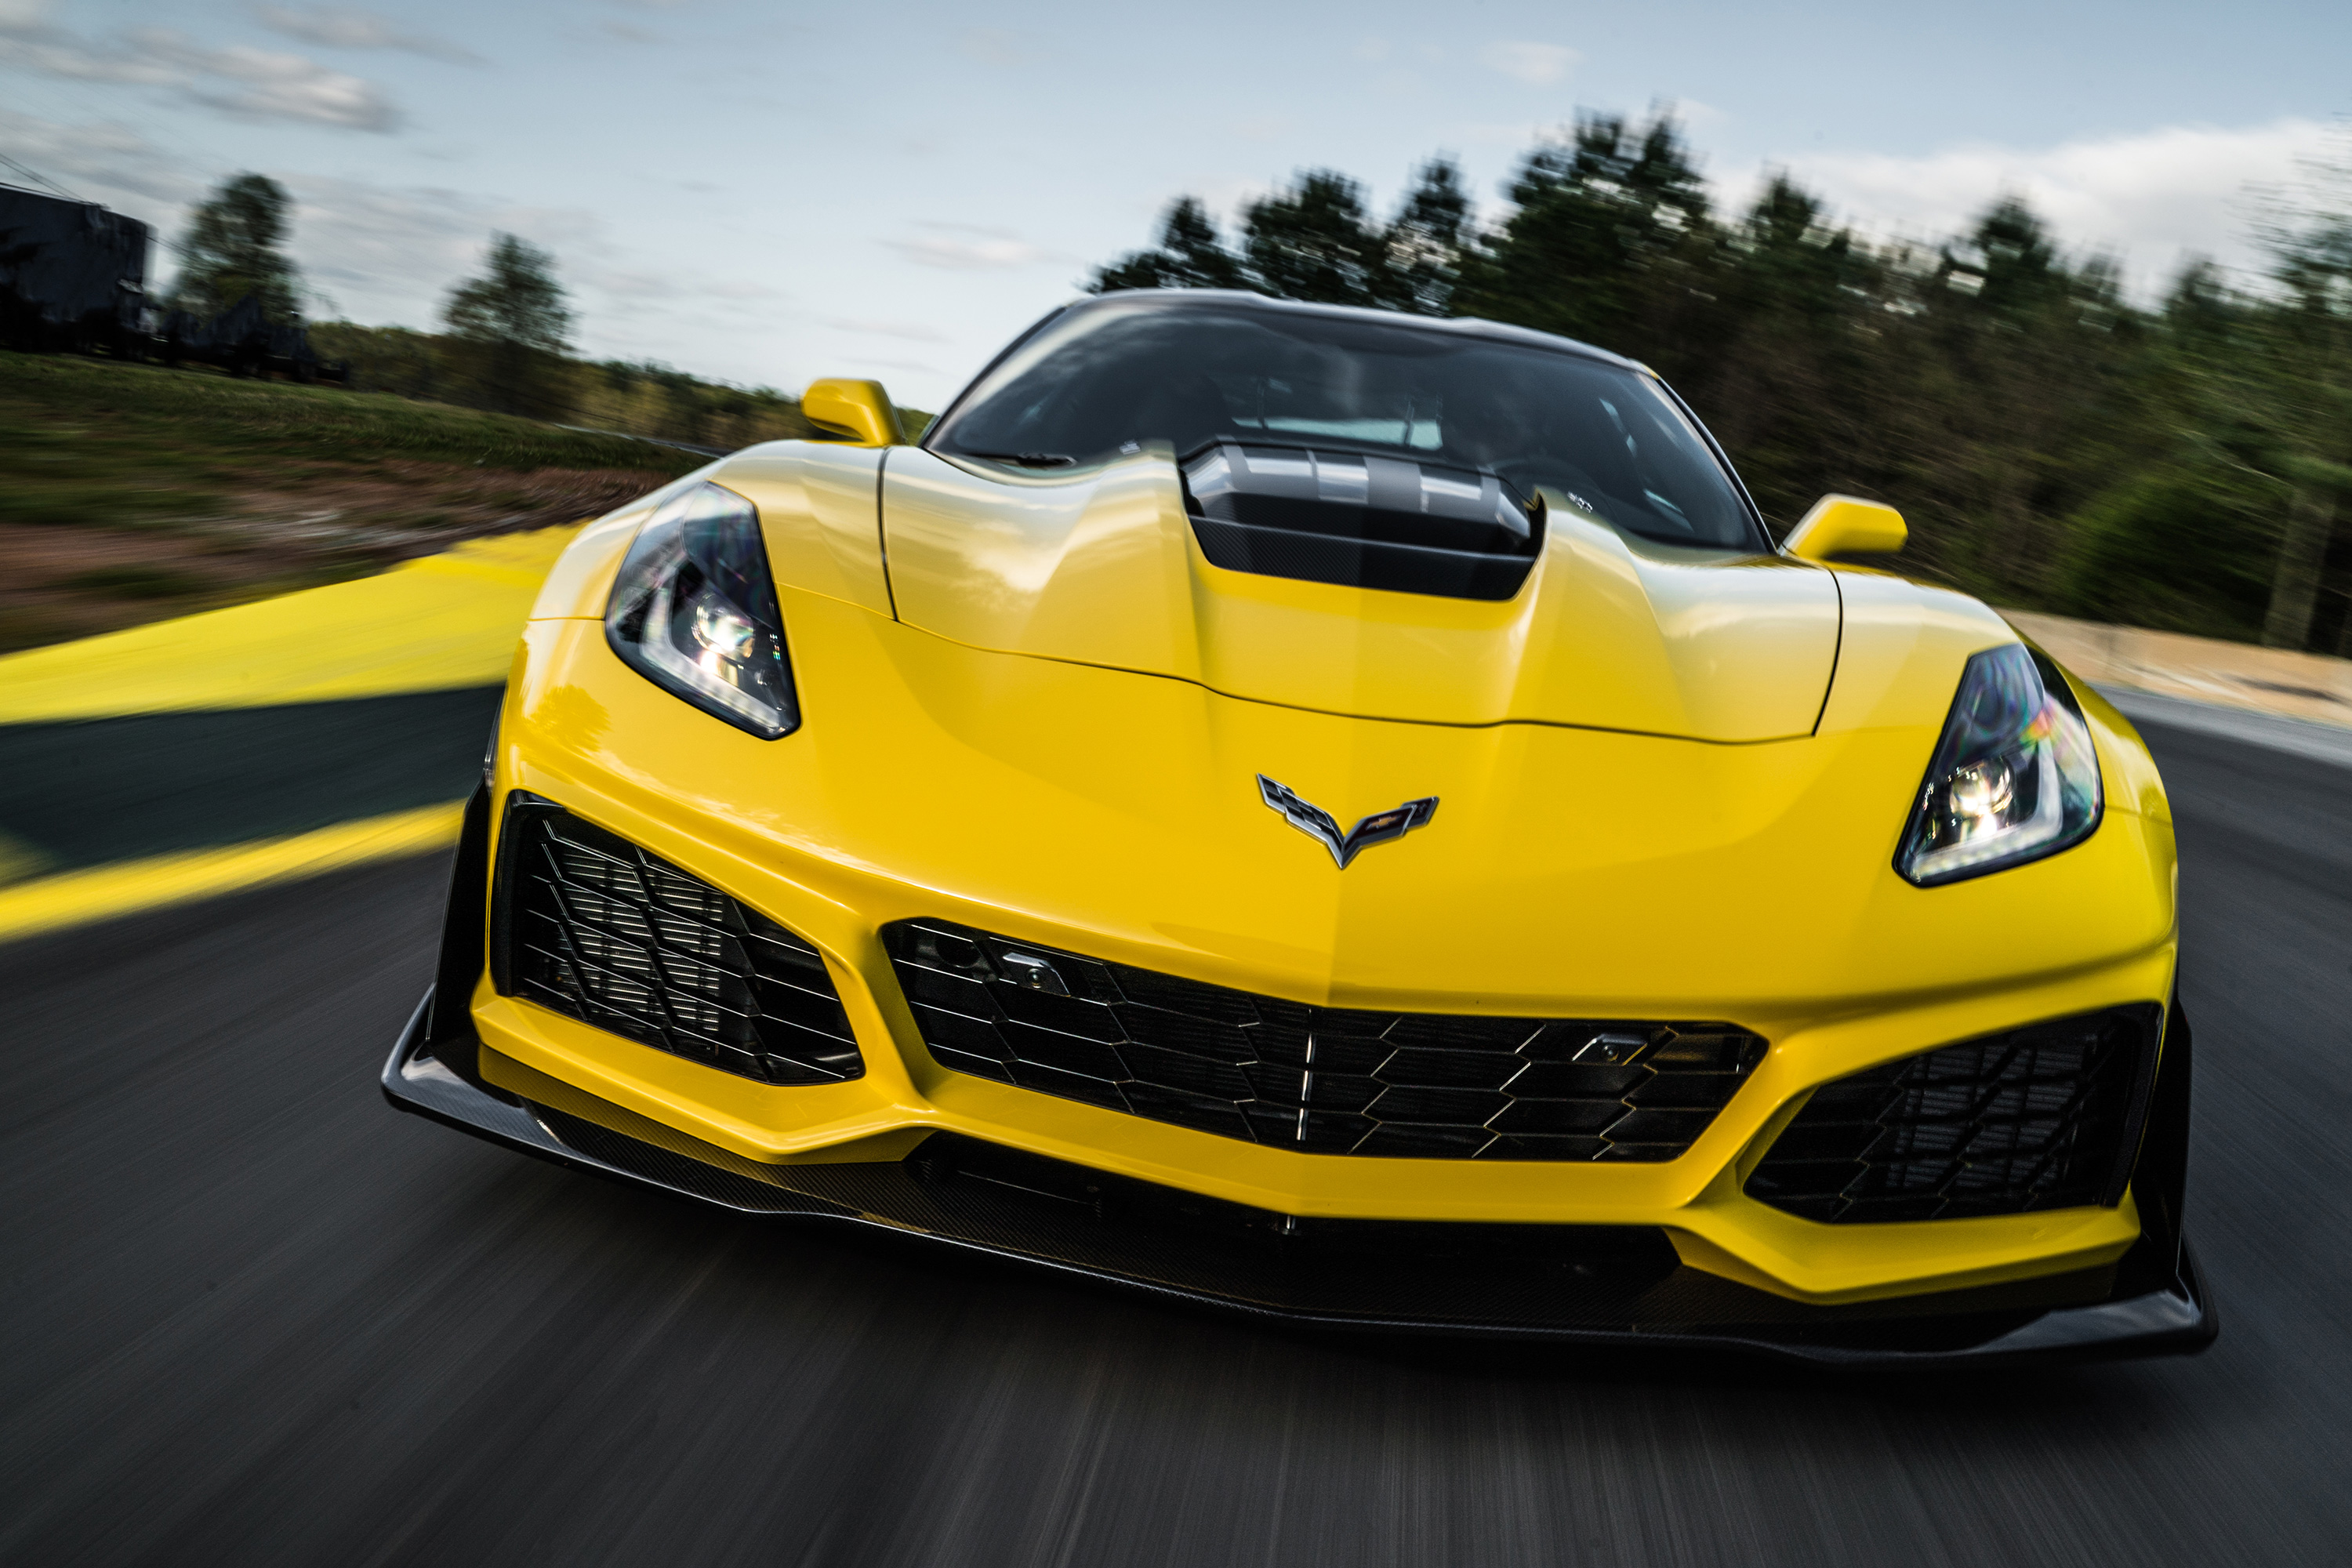 2019 chevy corvette zr1 front yellow angry